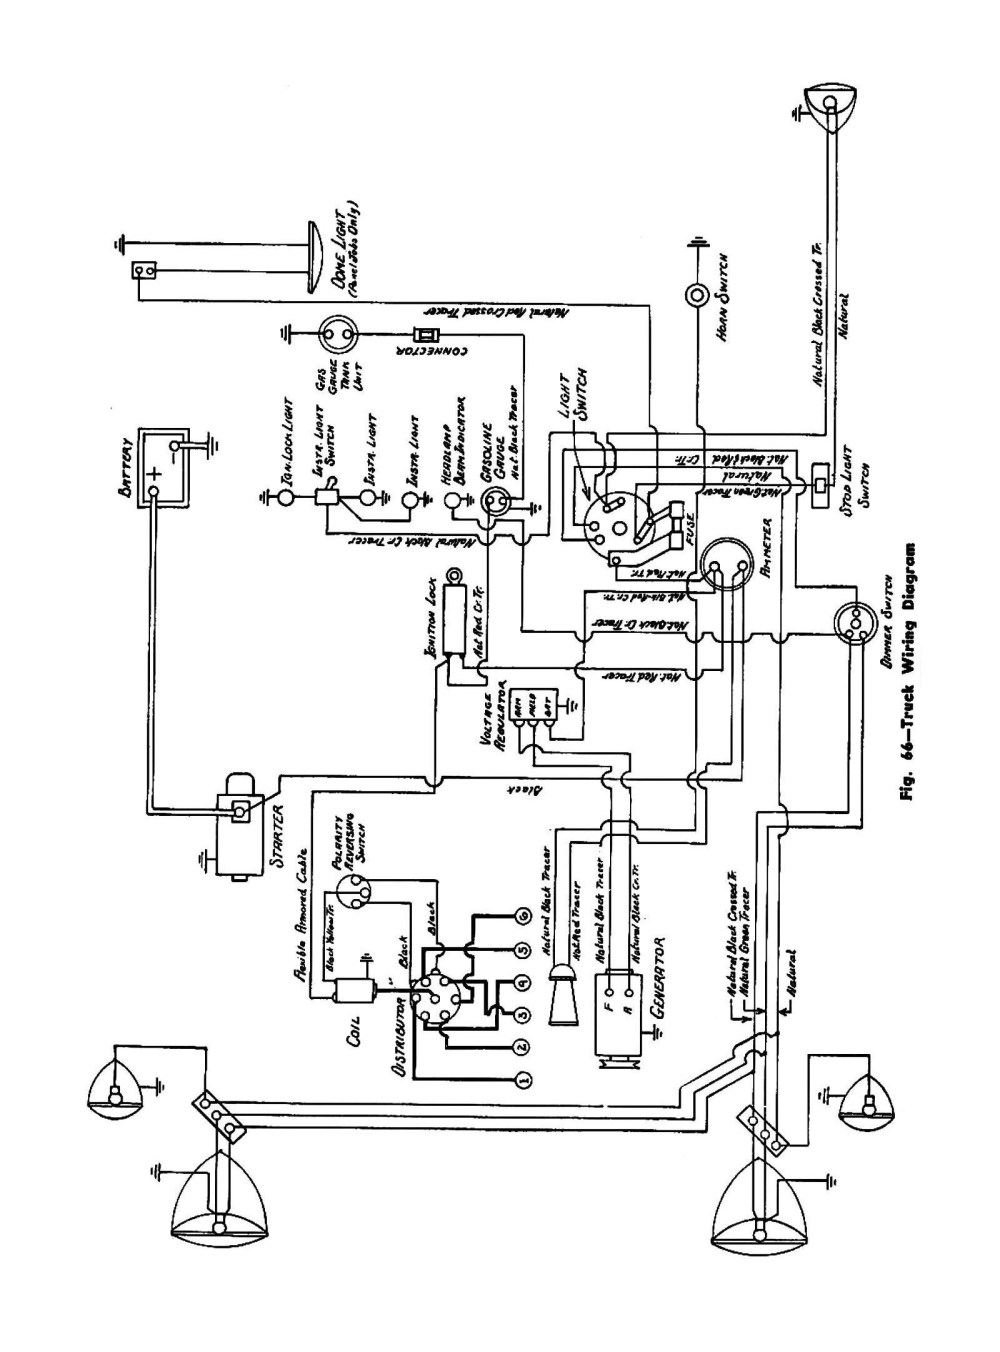 medium resolution of 1937 chevy wiring harness wiring diagram database chevy truck wiring harness diagram 1937 chevy wiring harness